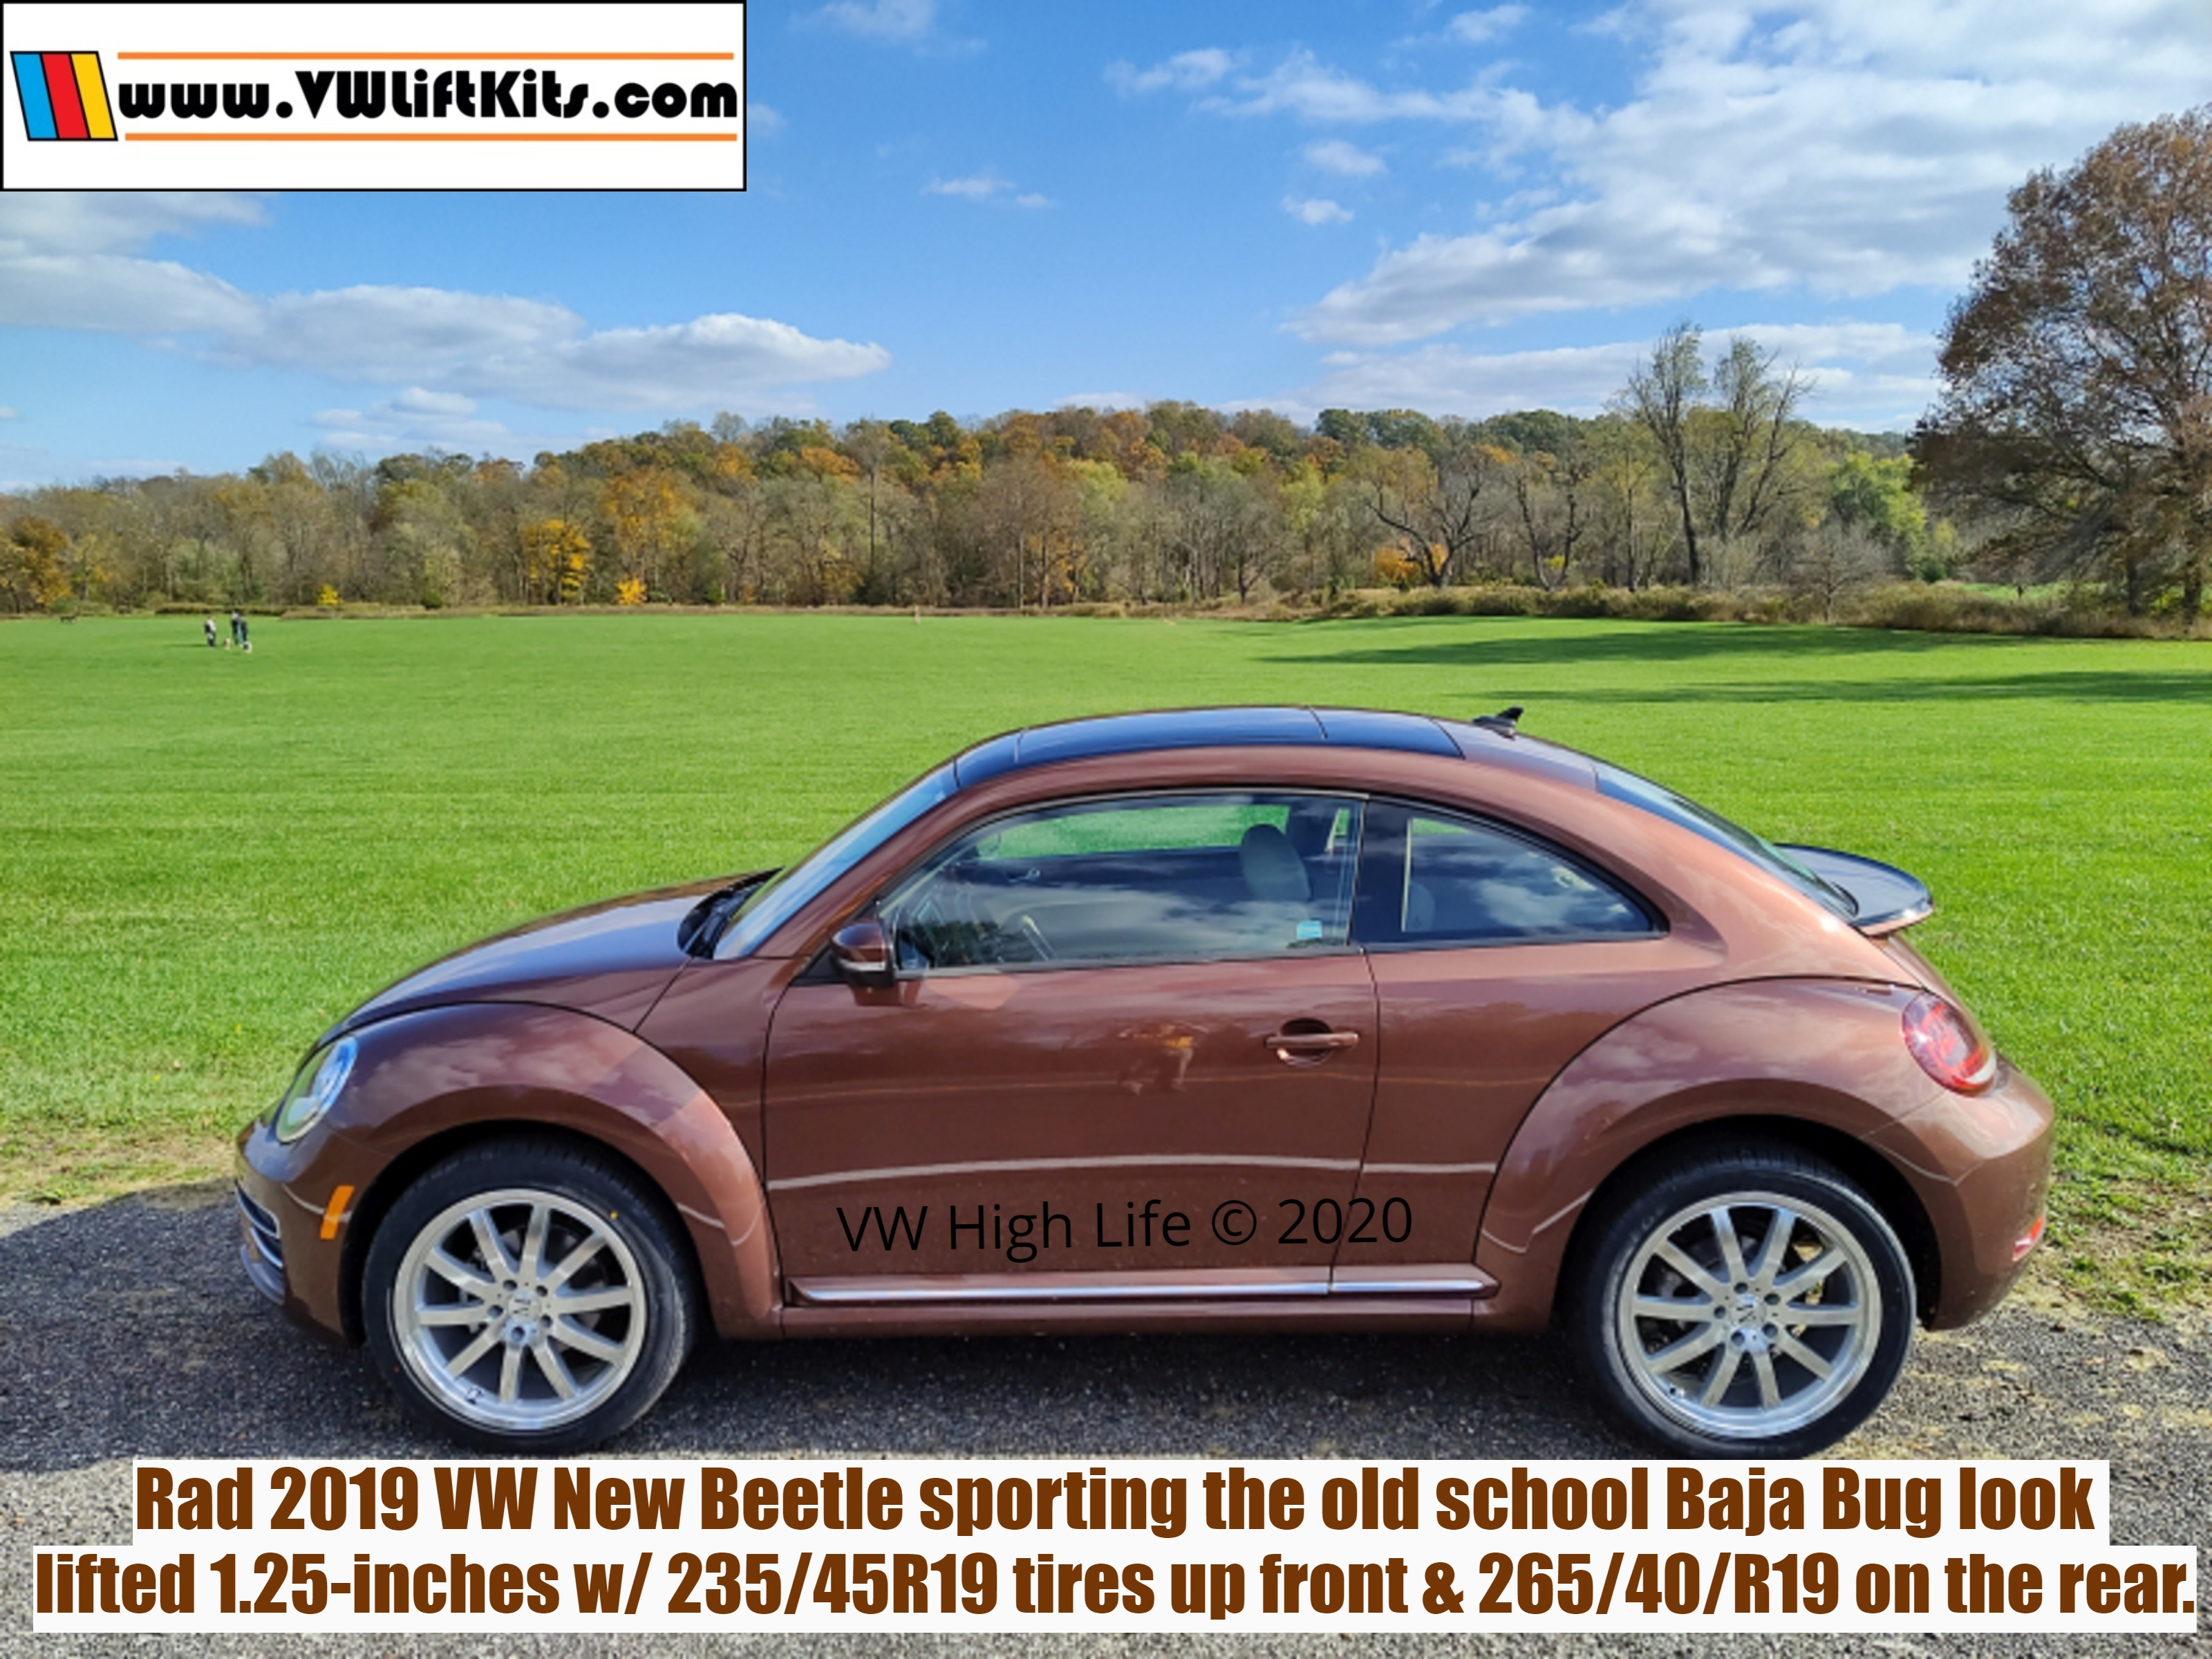 Super Cool VW New Beetle A5 lifted with 27-inch all season tires on 19-inch wheels!!